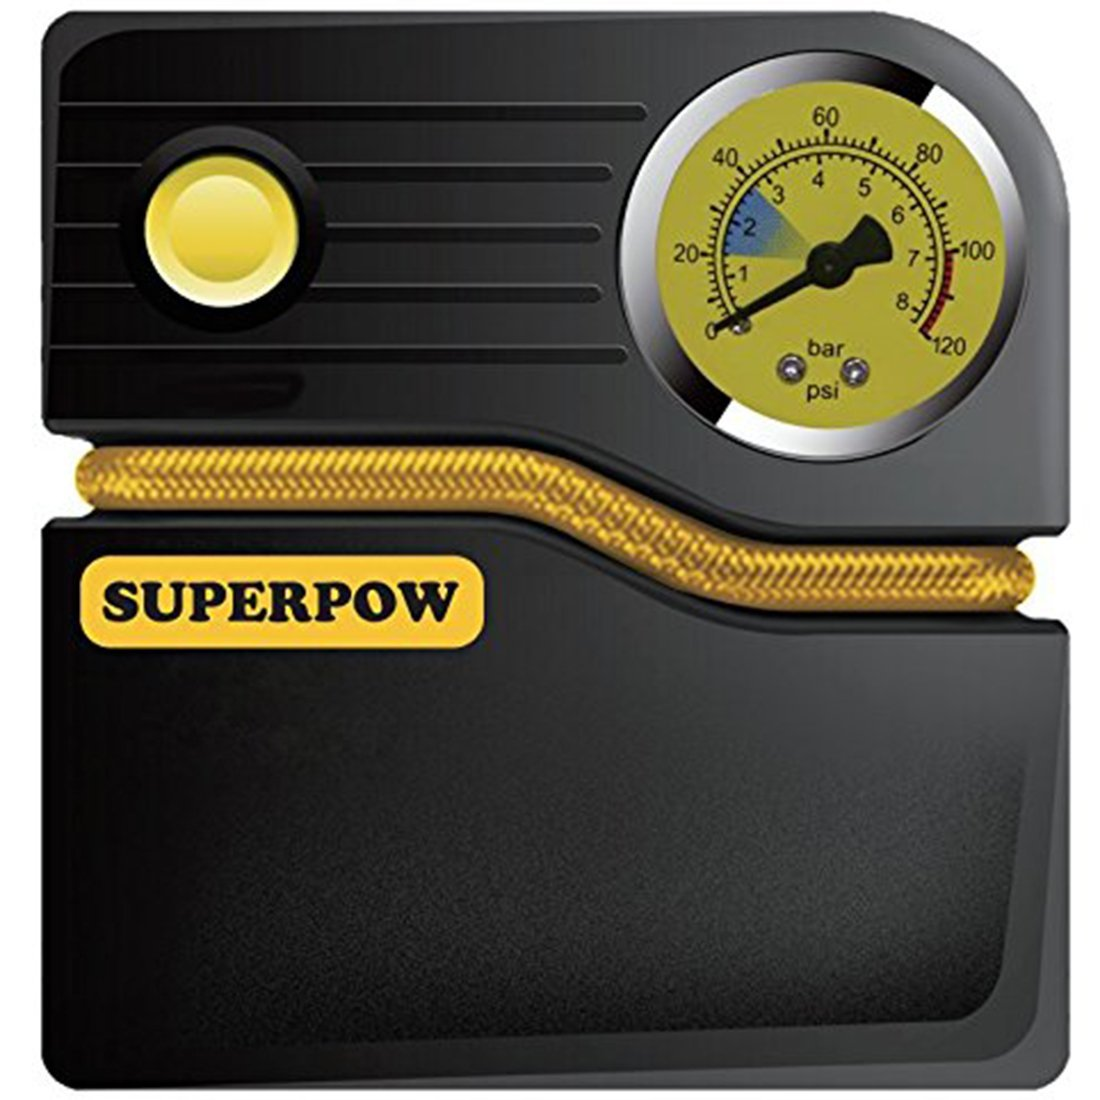 SUPERPOW 120PSI Compresseur d'Air Portable